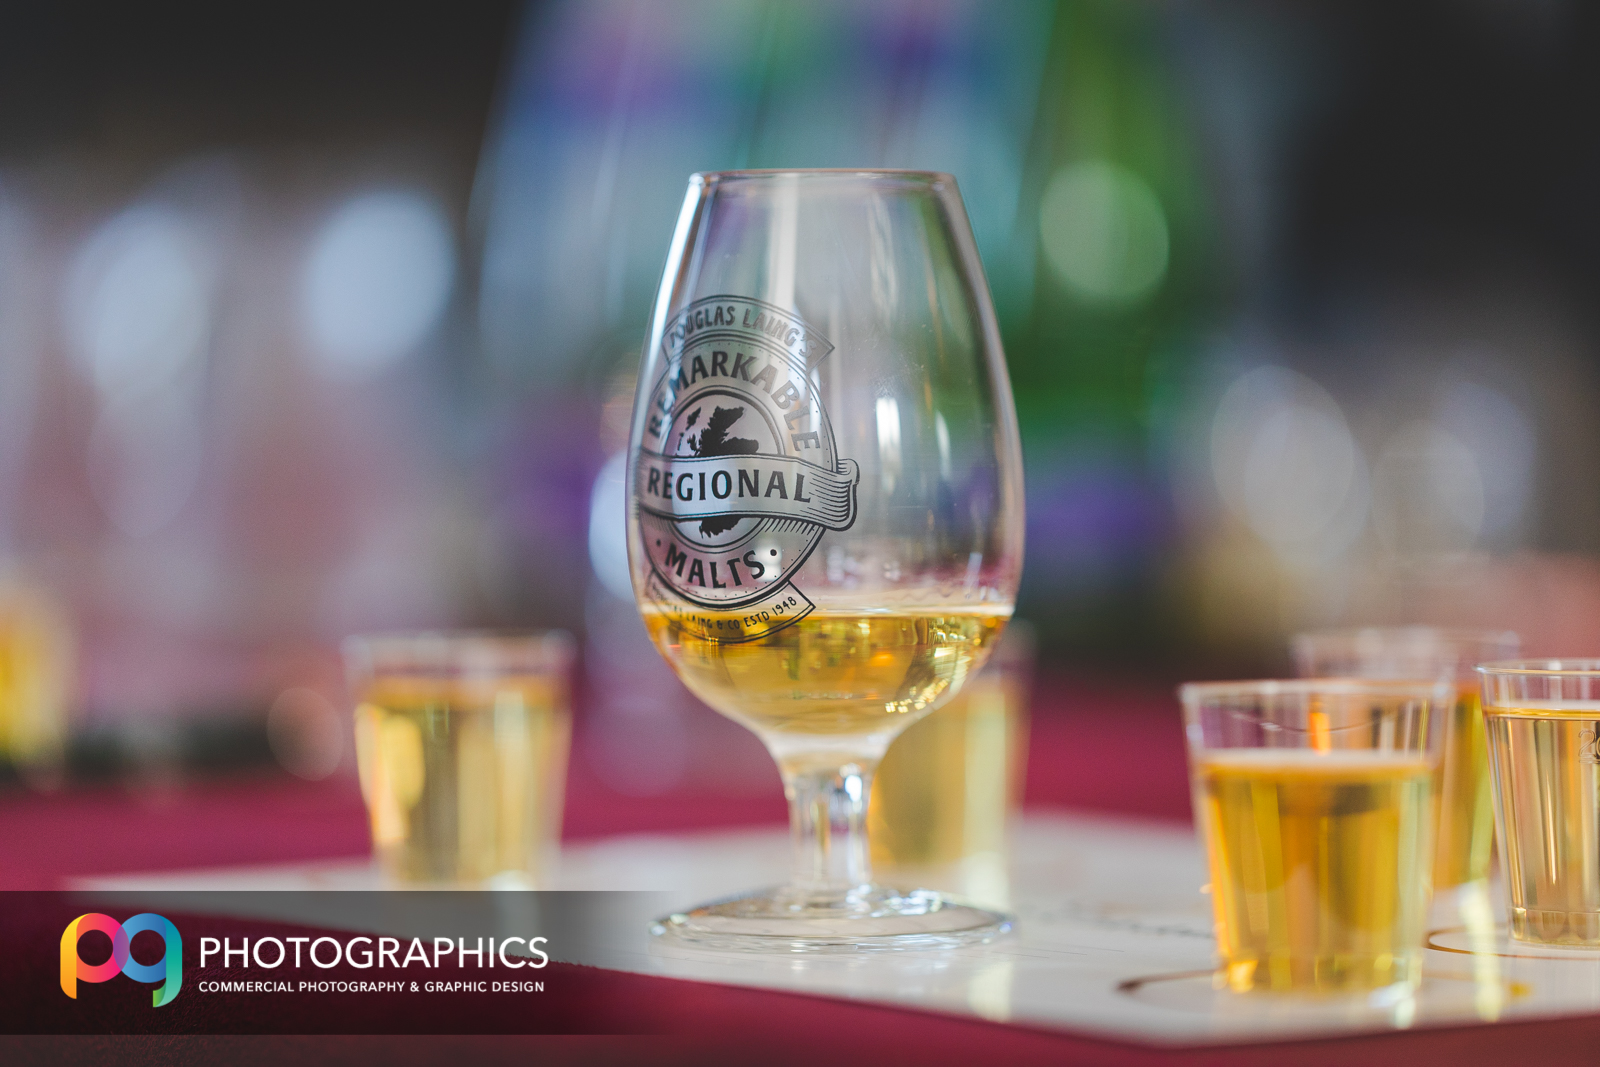 whisky-tasting-event-photography-glasgow-edinburgh-scotland-1.jpg